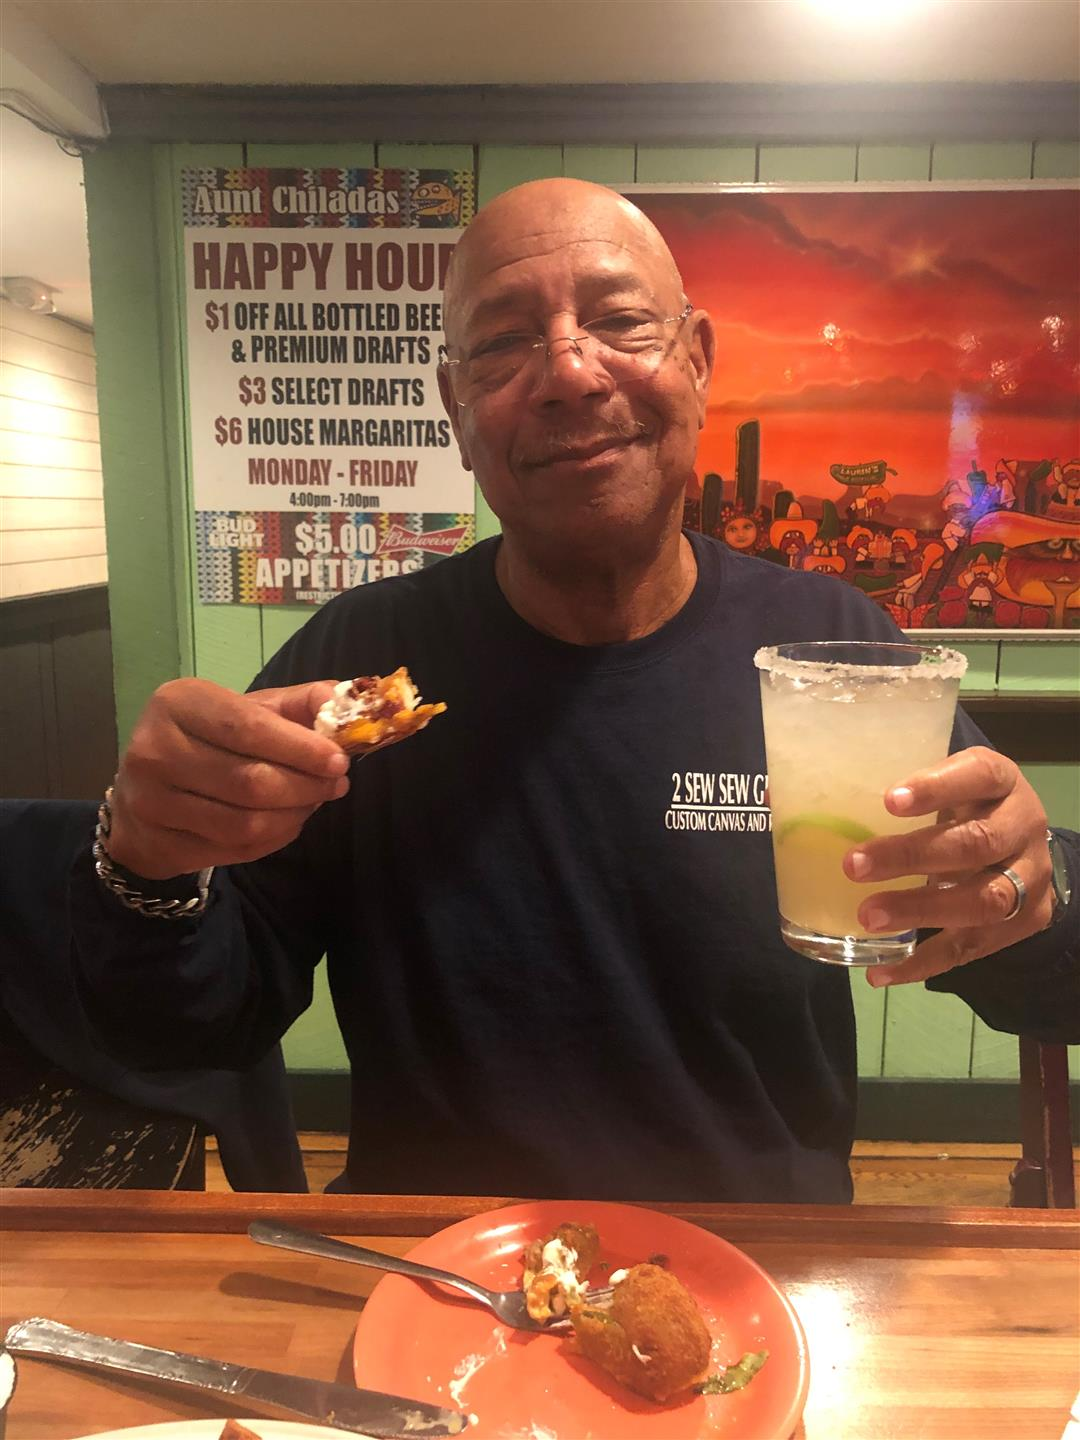 happy customer with a margarita and appetizer in his hand